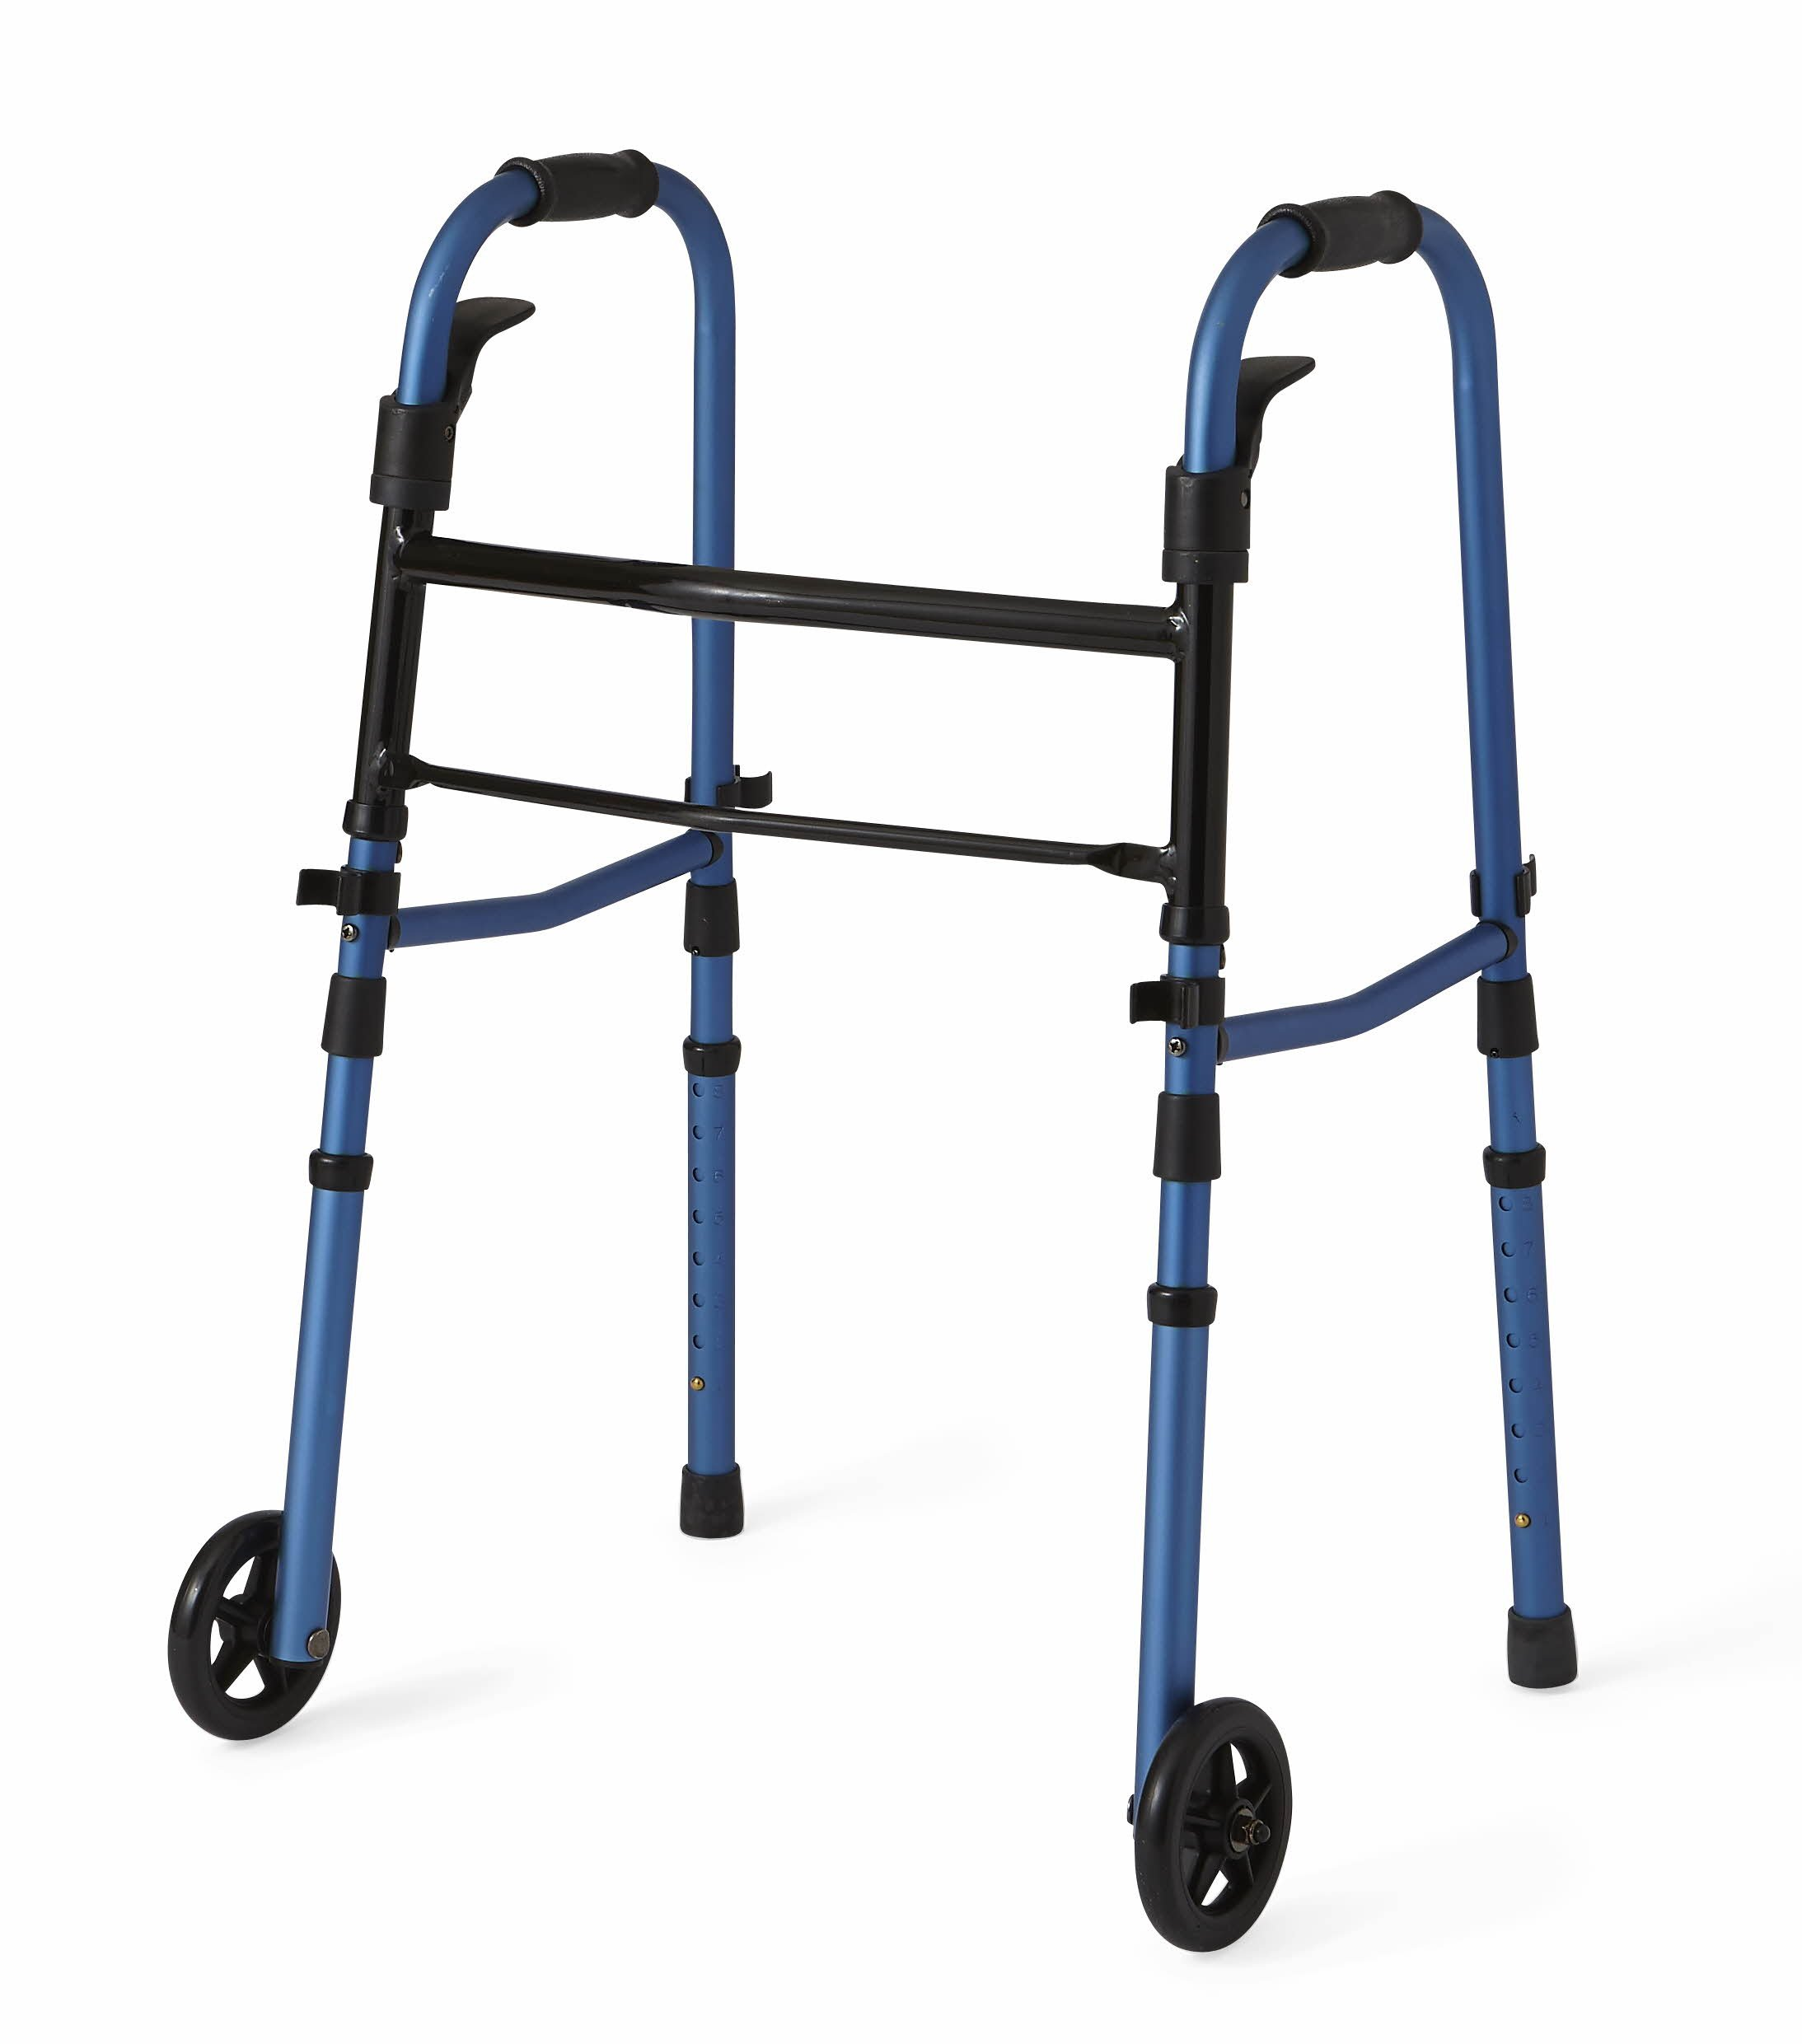 Medline Compact Folding Paddle Walker with Wheels, Blue, 5 inch by Medline